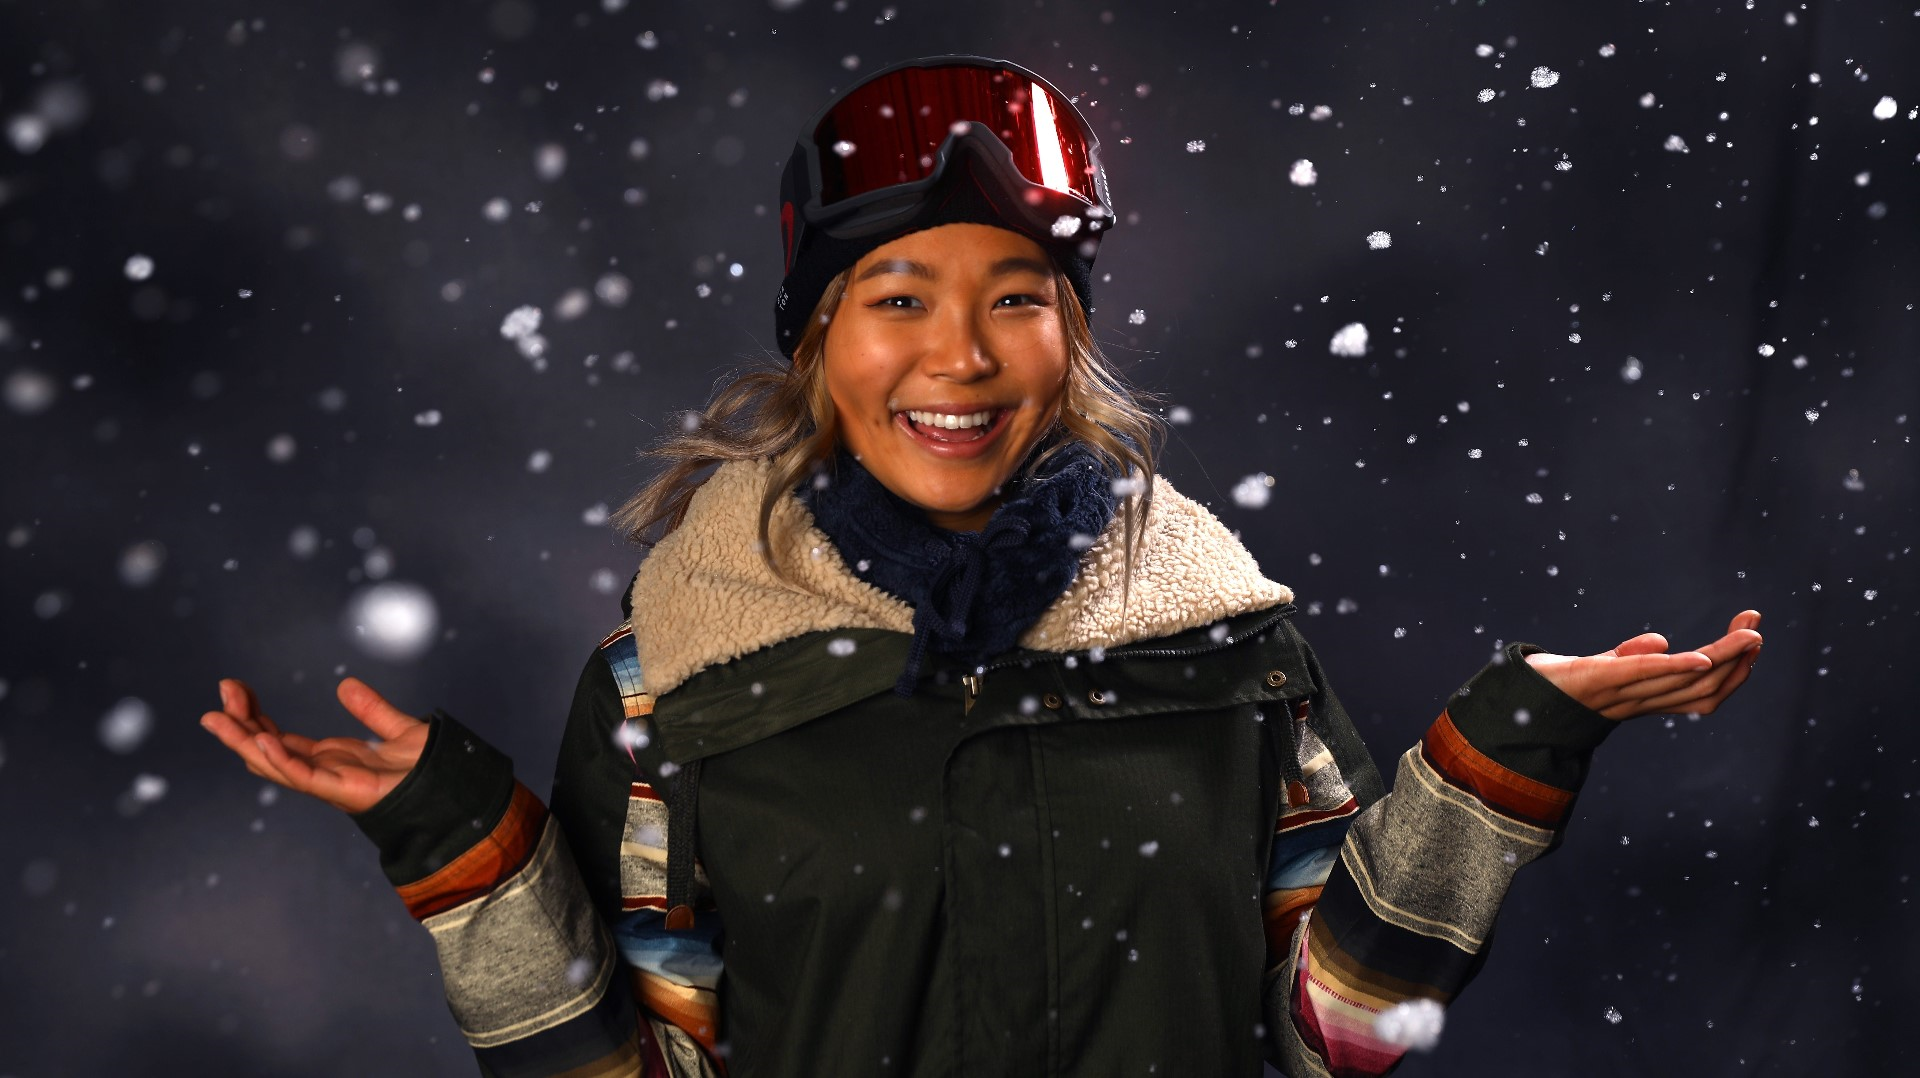 chloe kim - photo #12